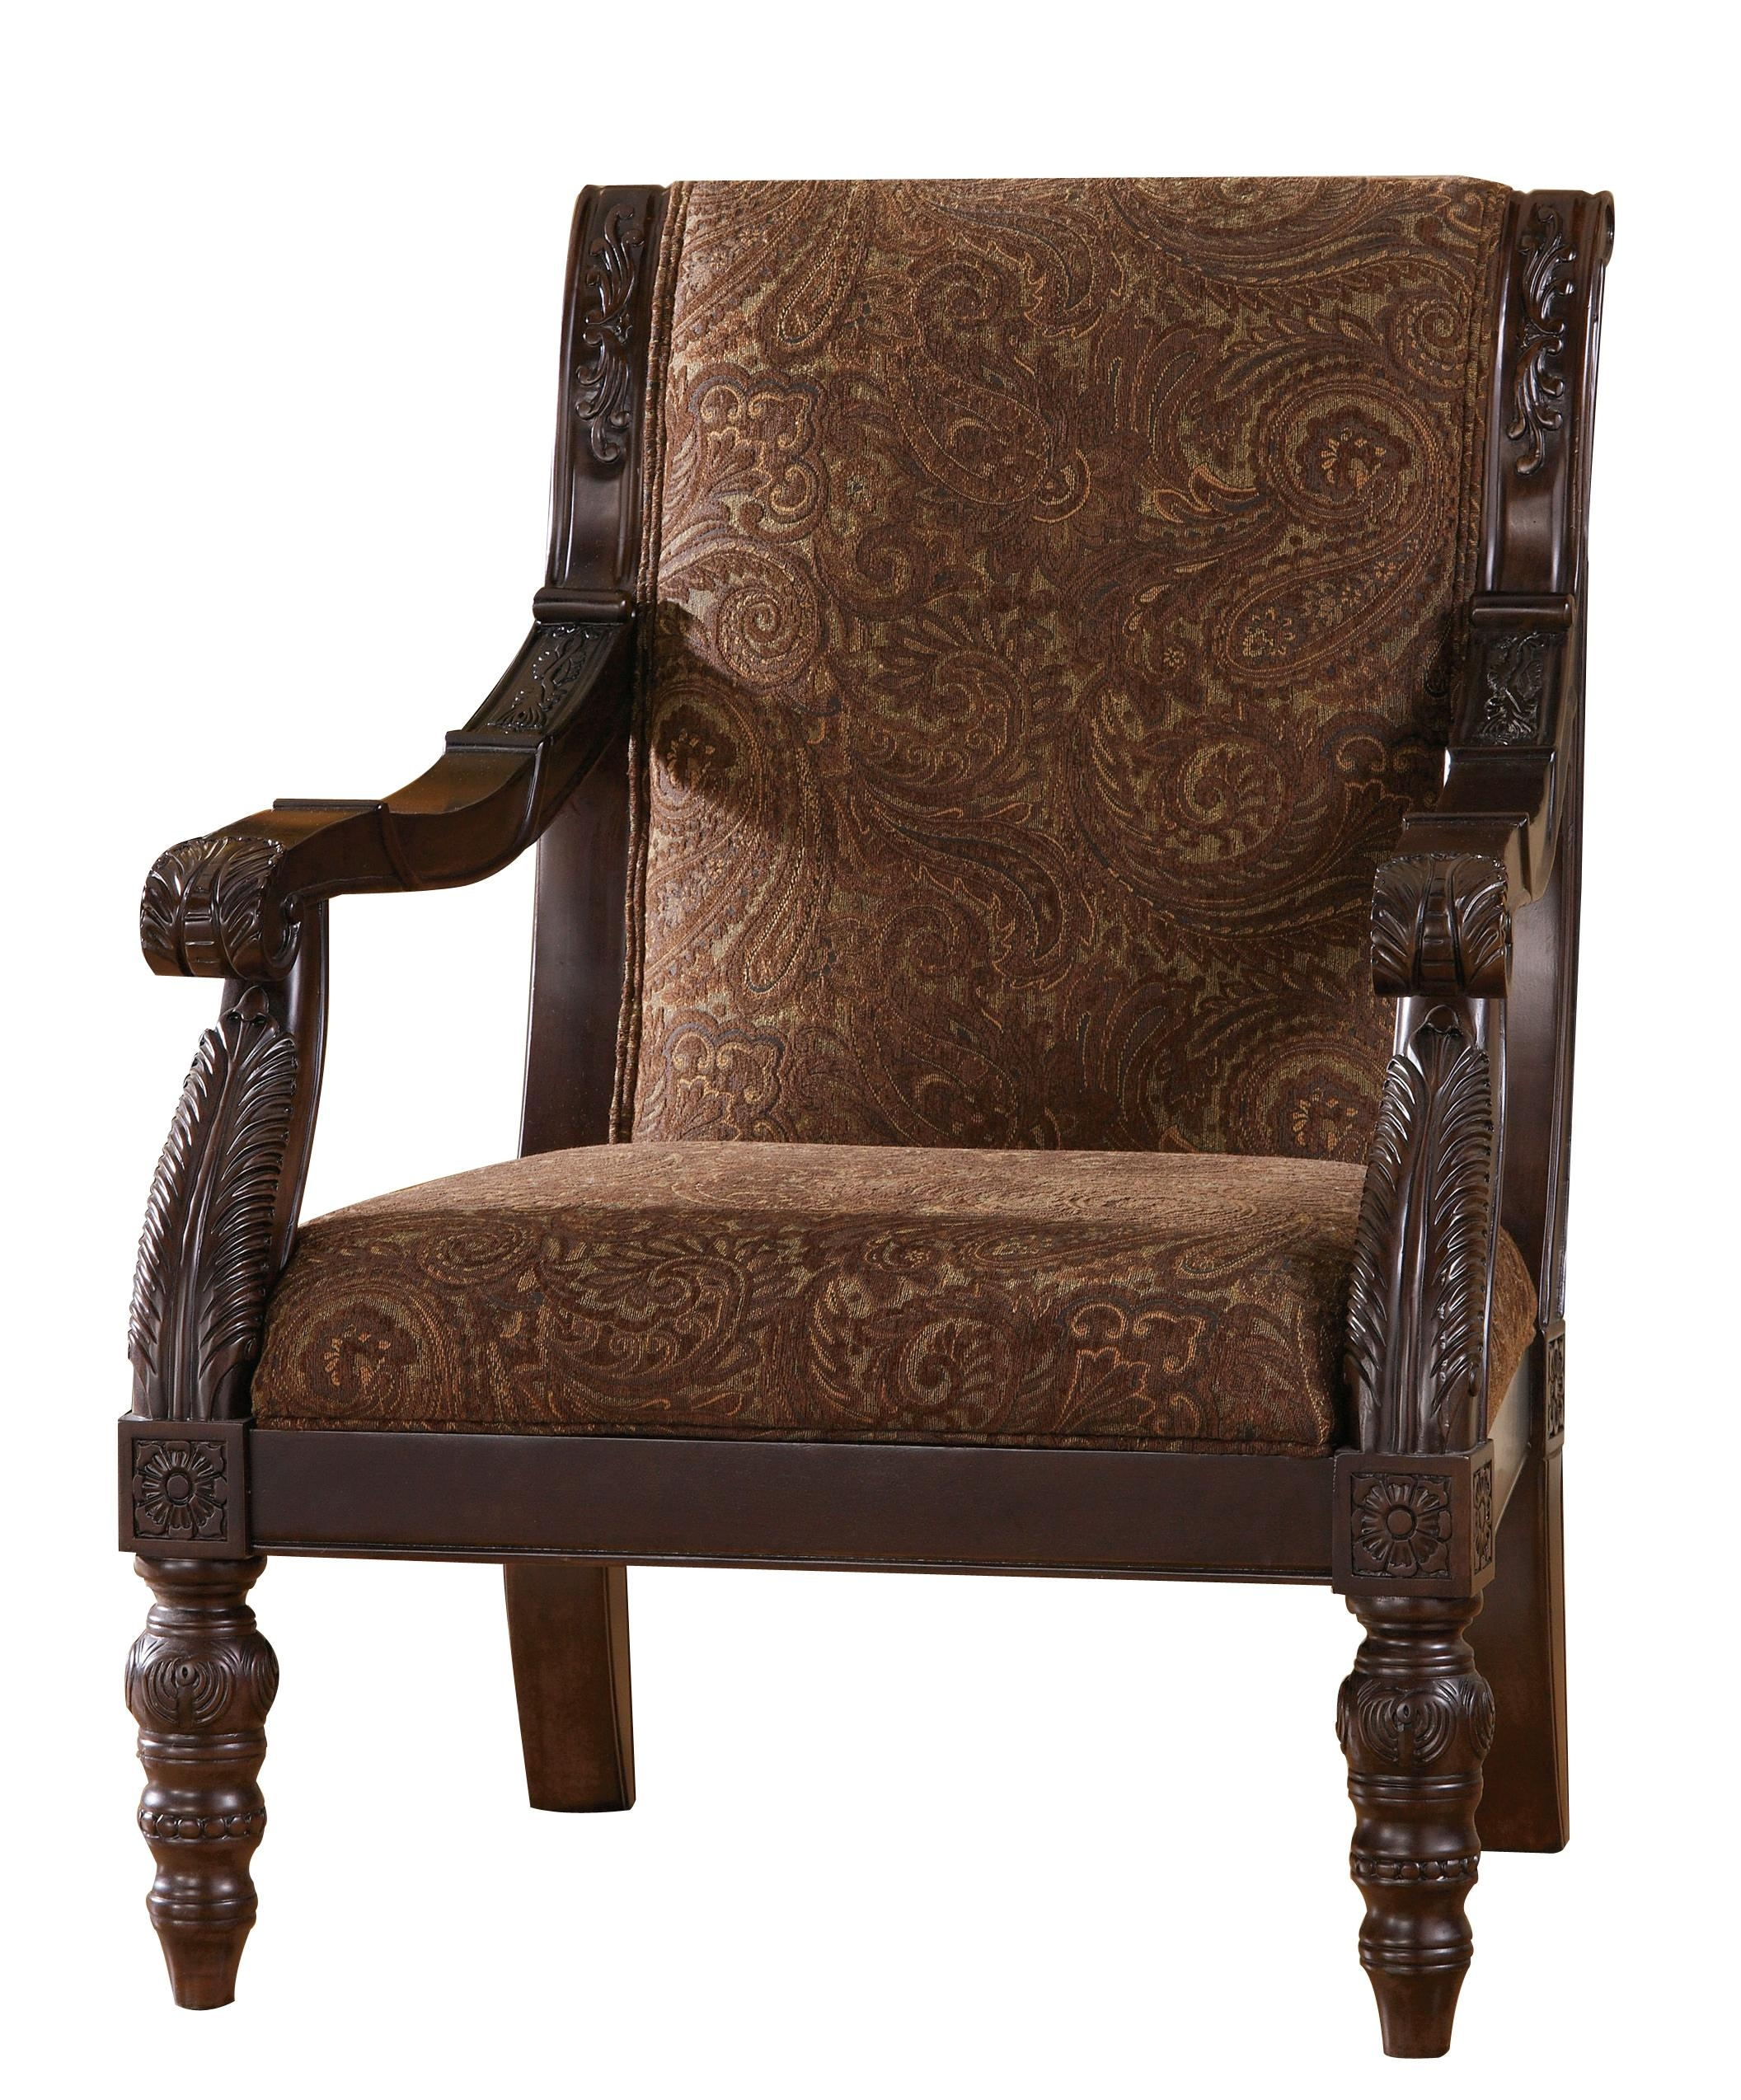 Bradington Traditional Truffle Fabric Accent Chair | Living Rooms In Bradington Truffle (Image 7 of 20)